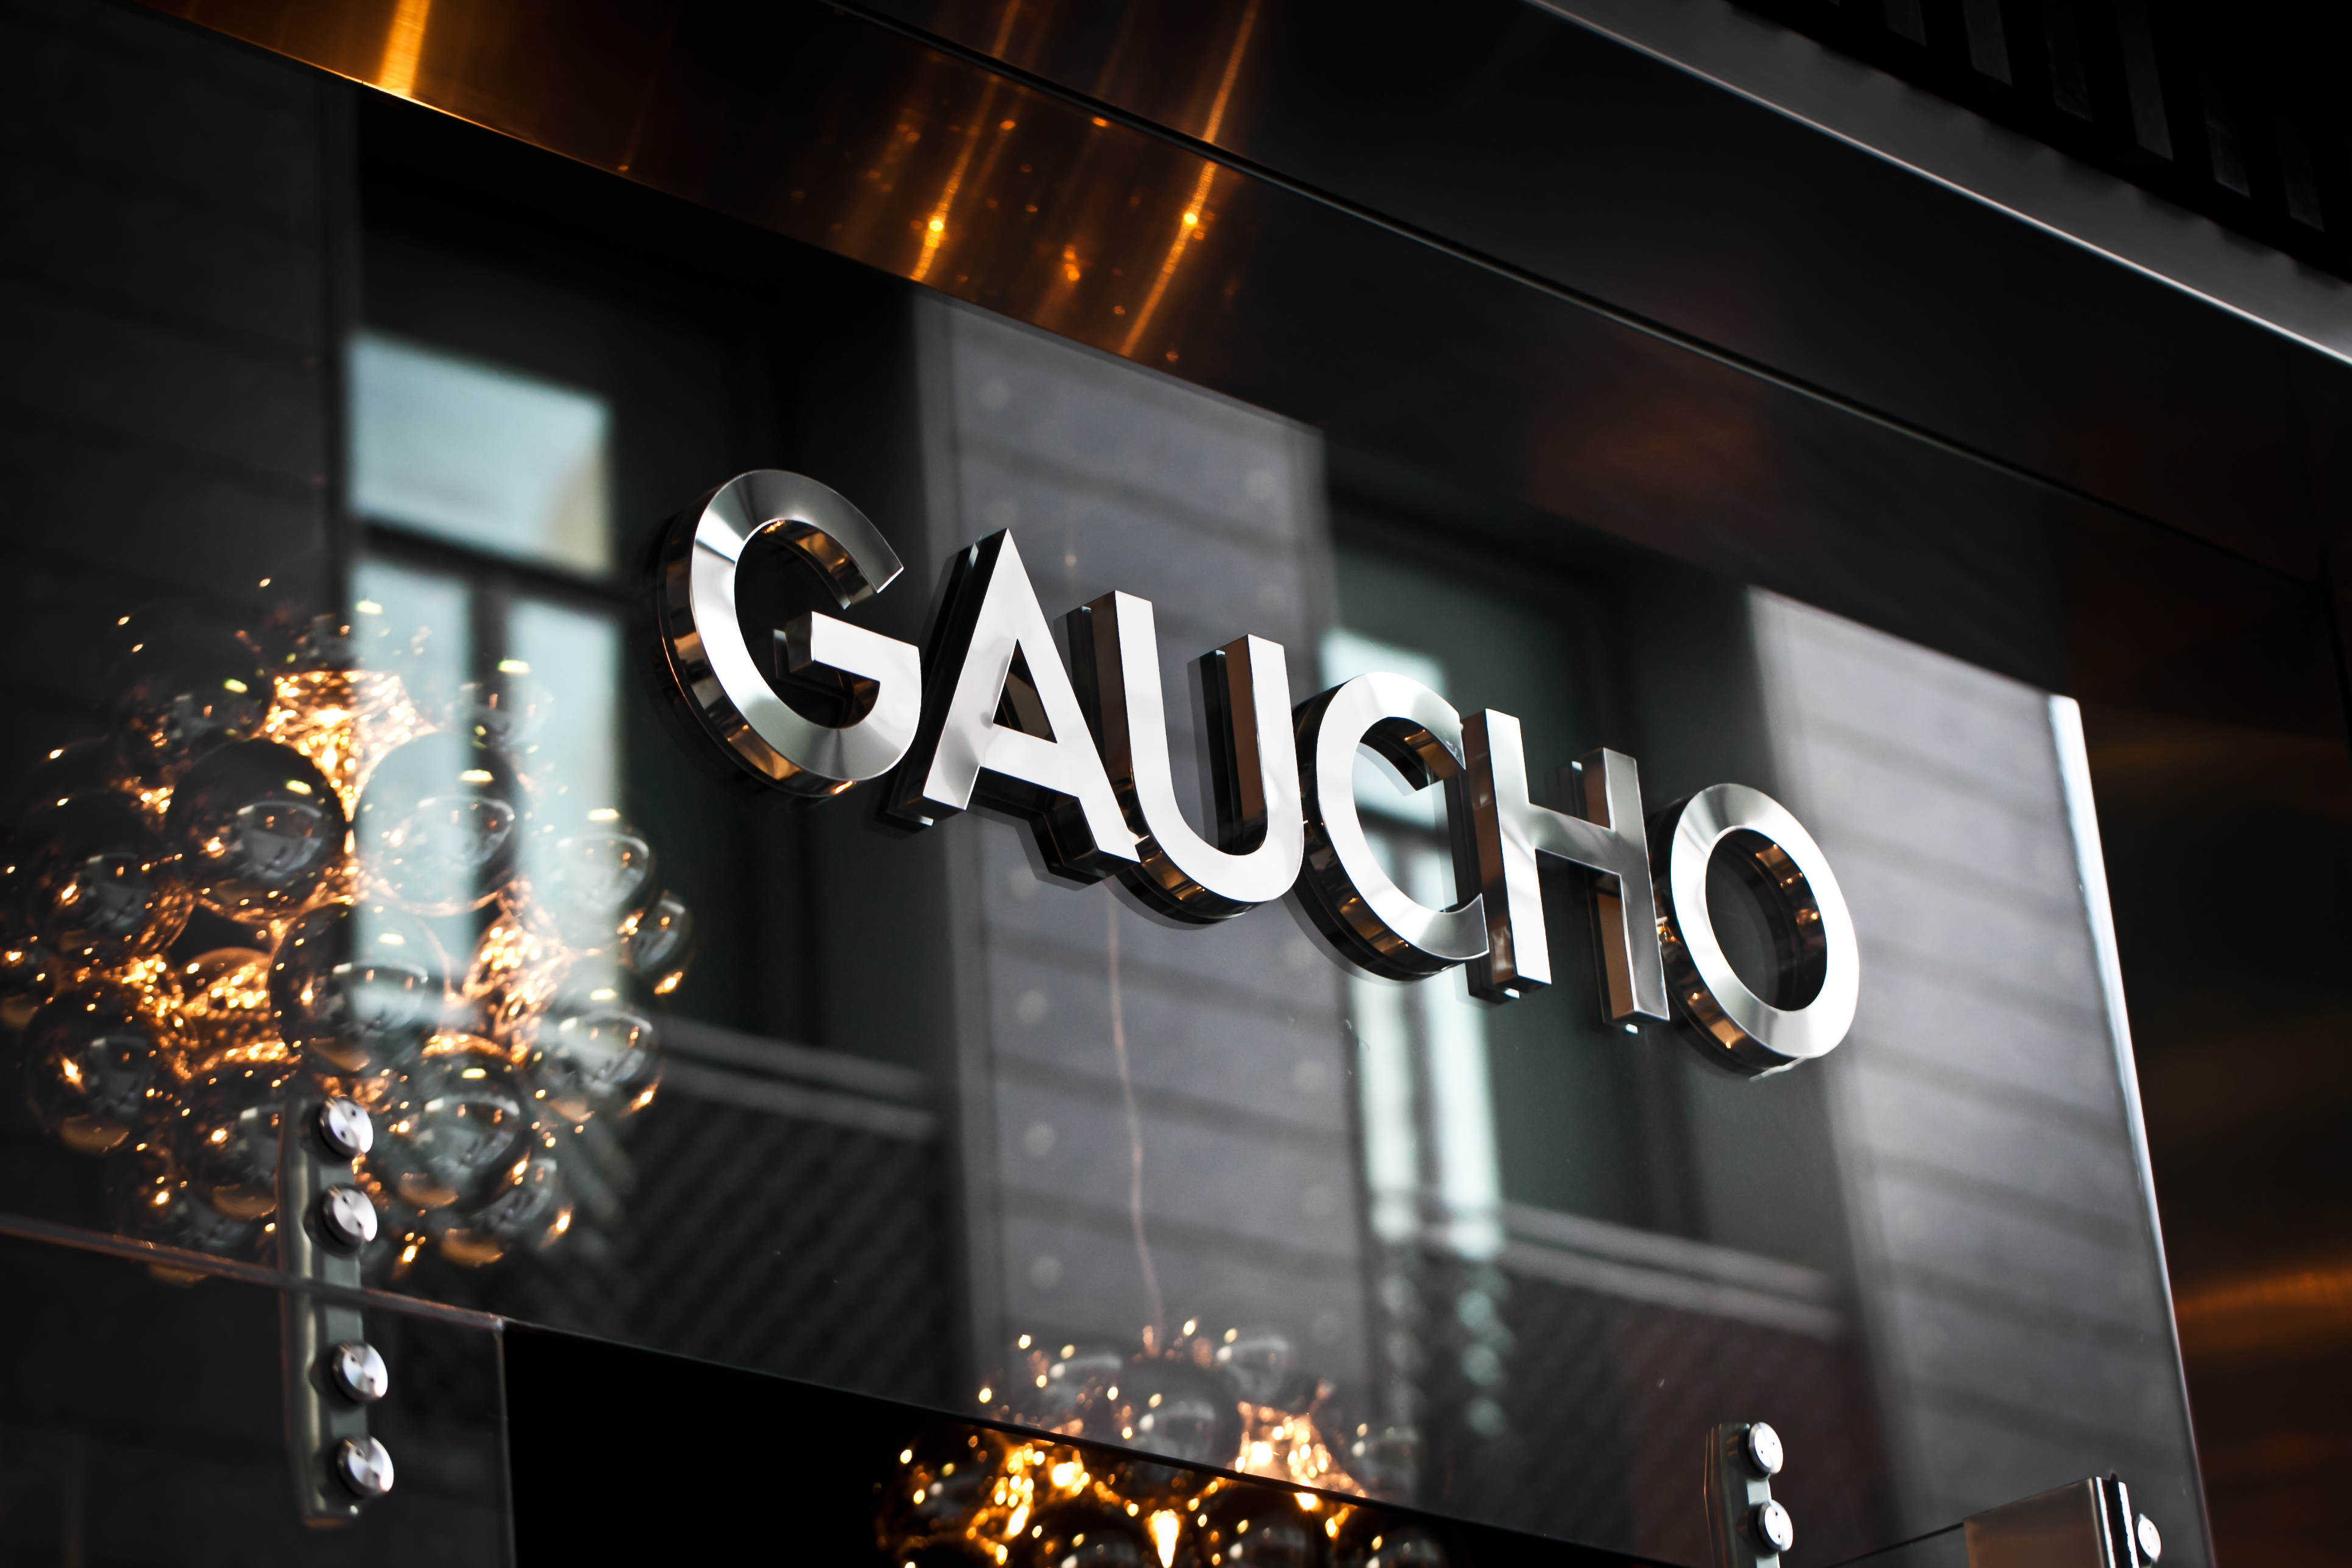 Gaucho sign